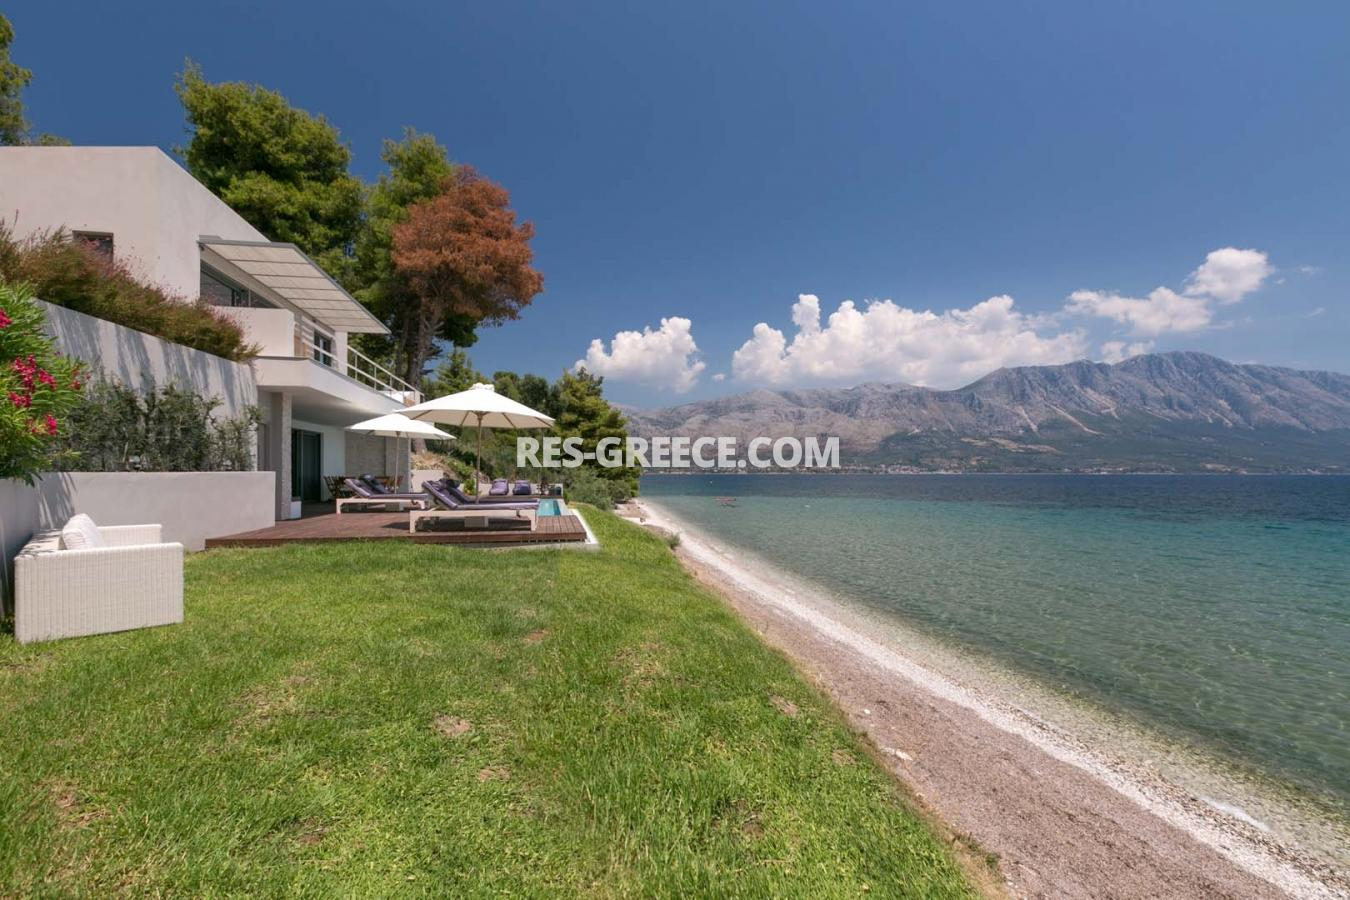 Kastor, Epir, Greece - off-plan villa project first line to the sea - Photo 1